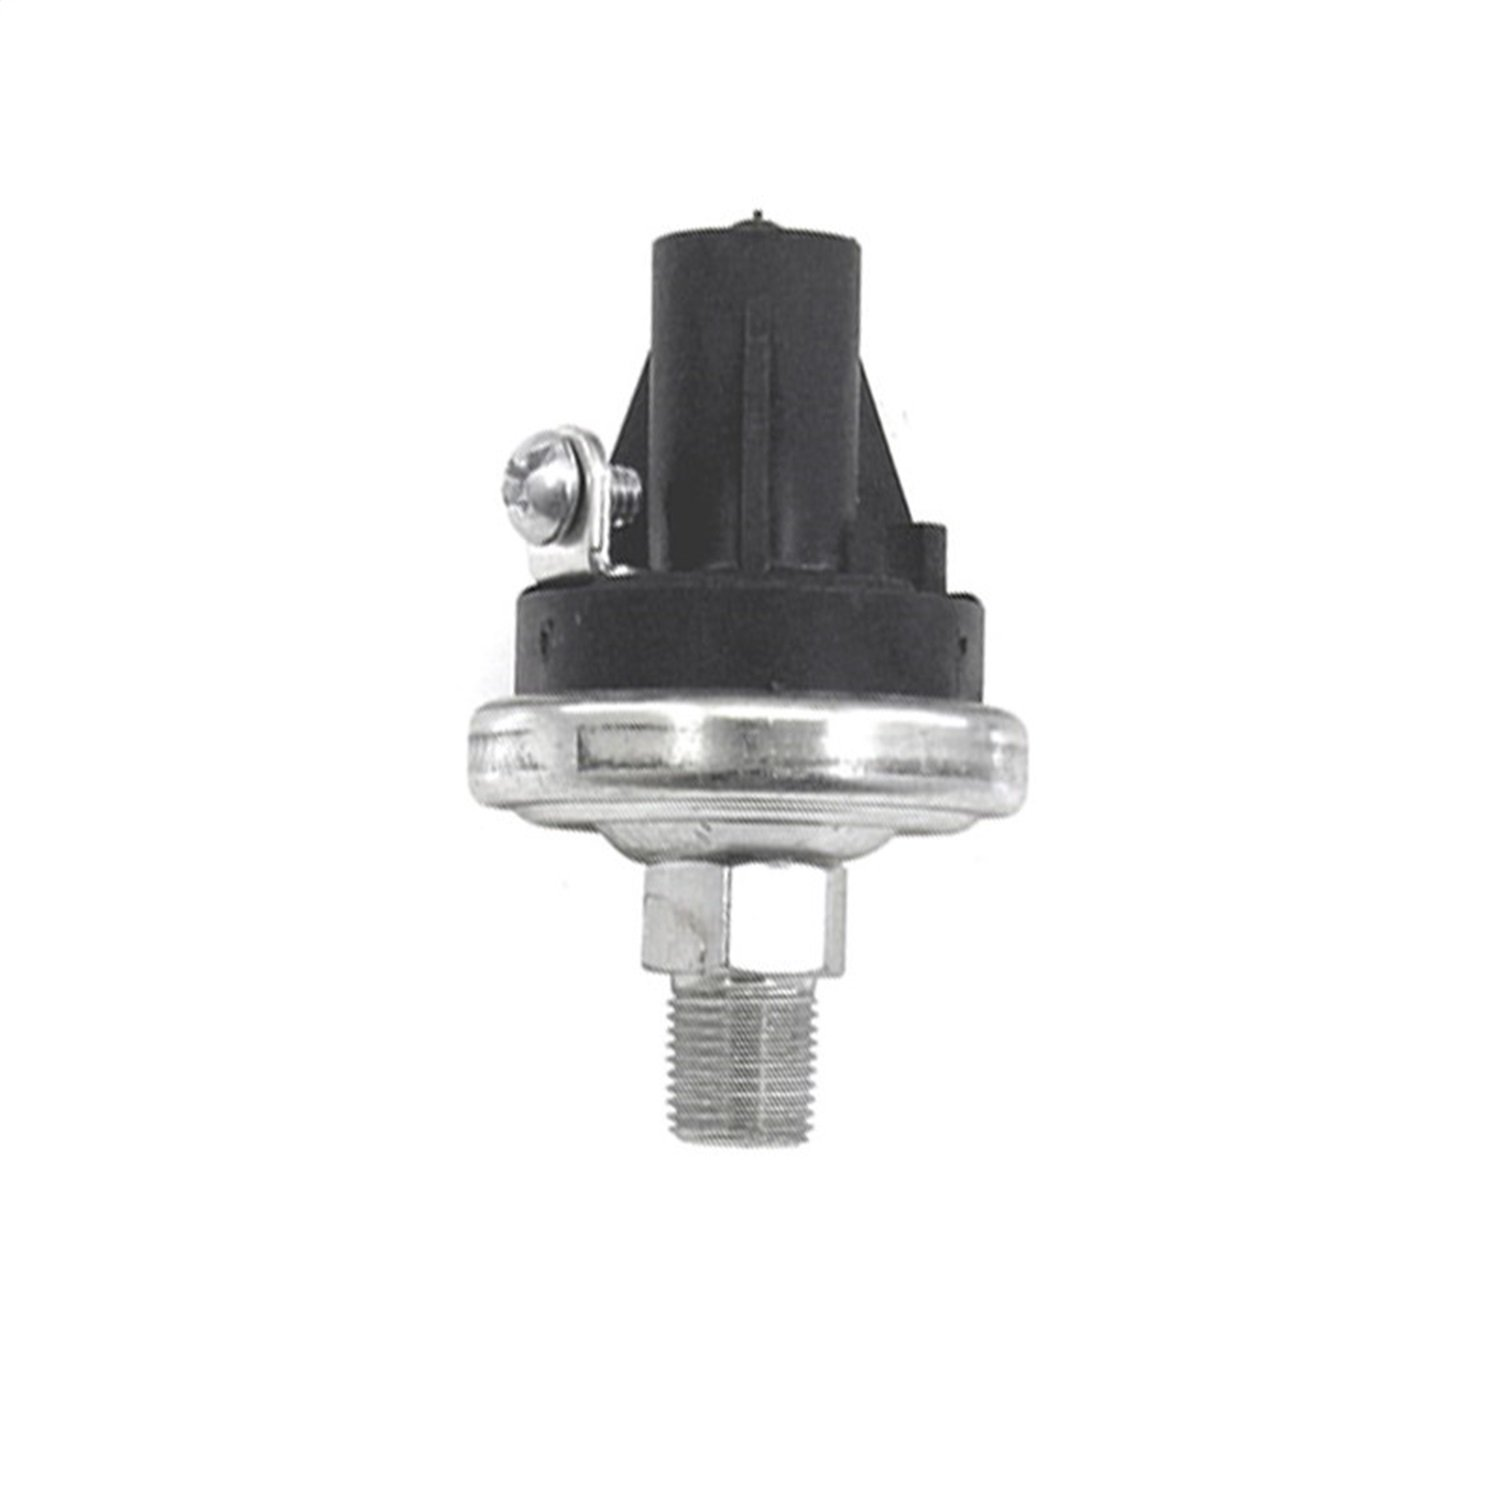 Nitrous Express 15708 Heavy Duty Fuel Pressure Safety Switch for Carburetor Fuel Pressure